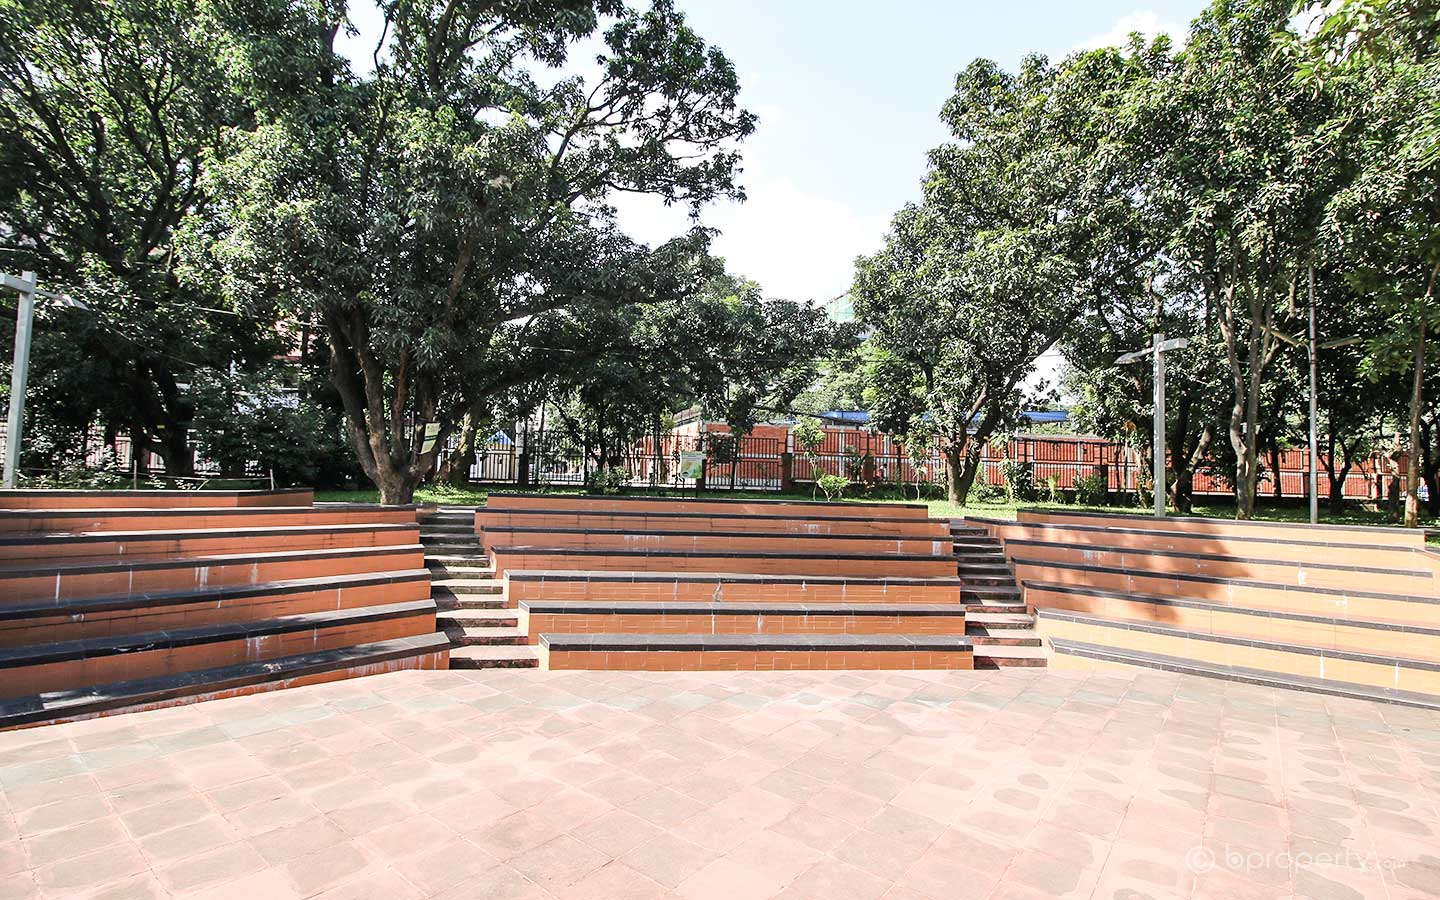 Quality life in Gulshan thanks to parks